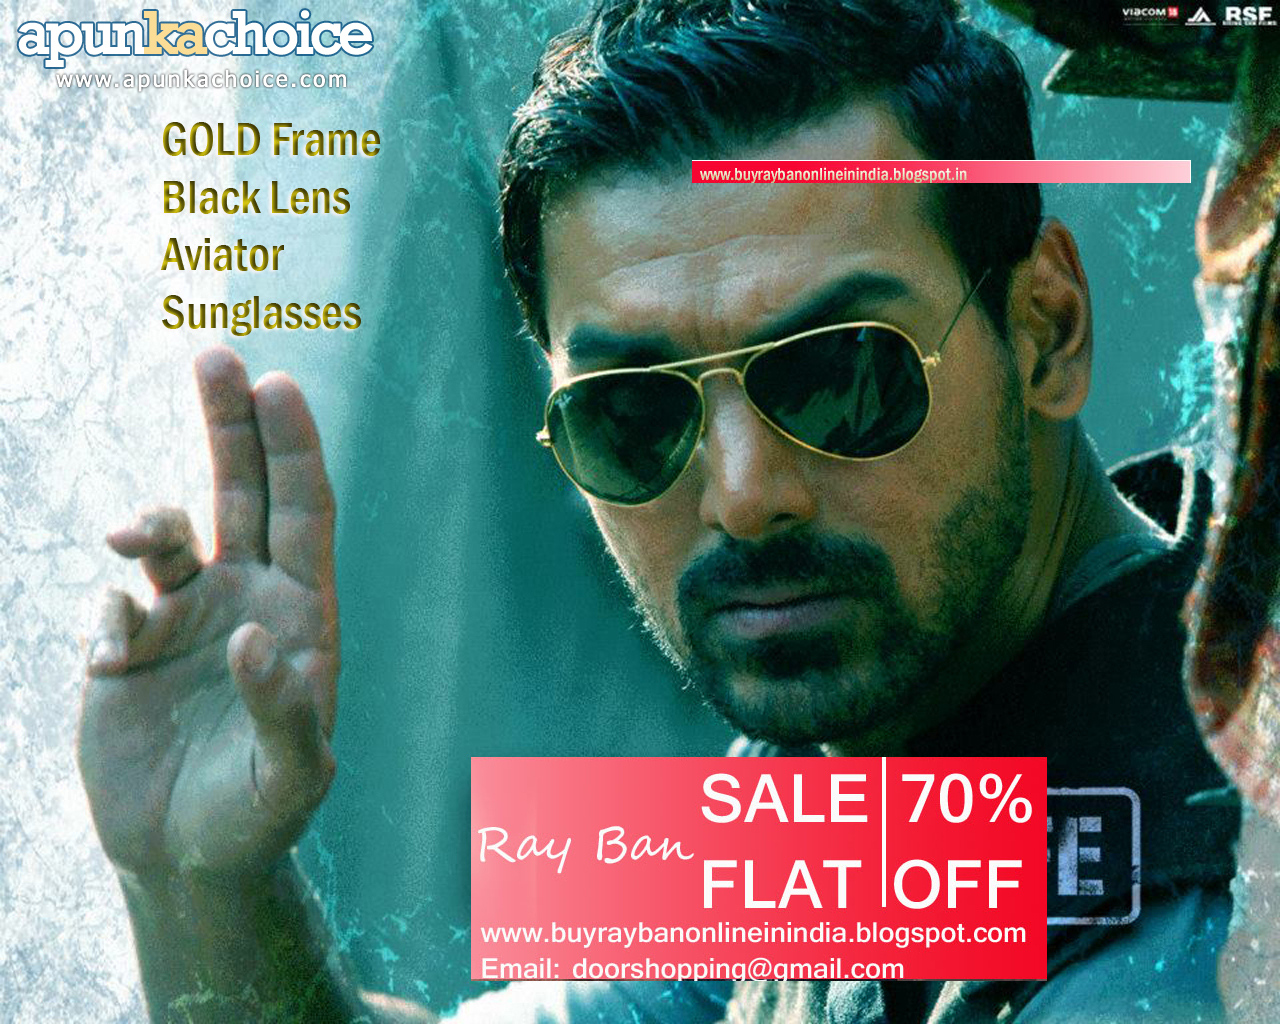 Ray Ban Online India